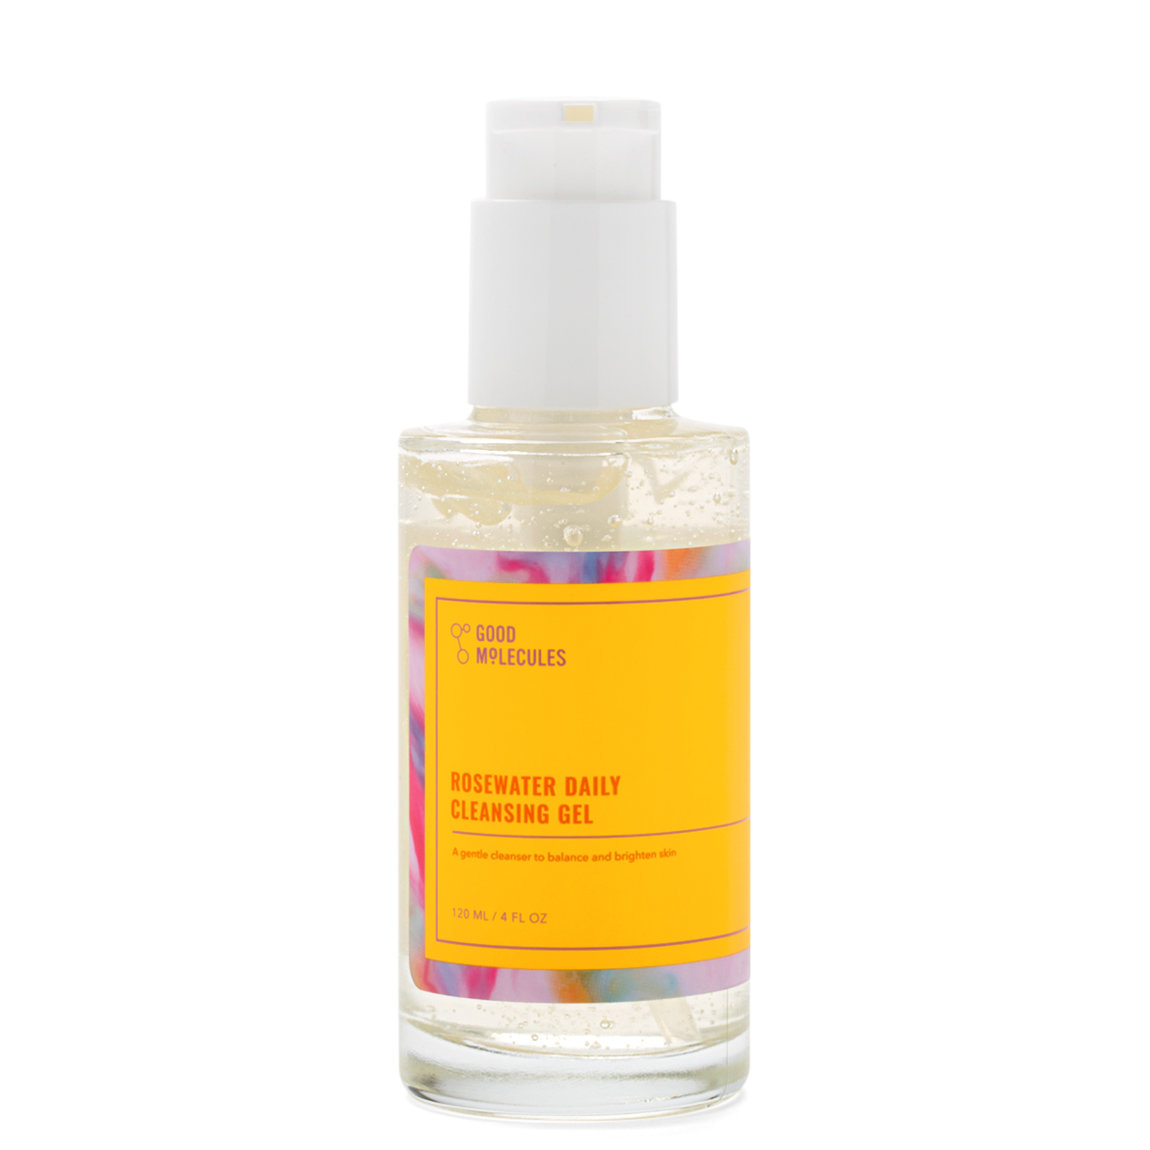 Good Molecules Rosewater Daily Cleansing Gel Single alternative view 1 - product swatch.